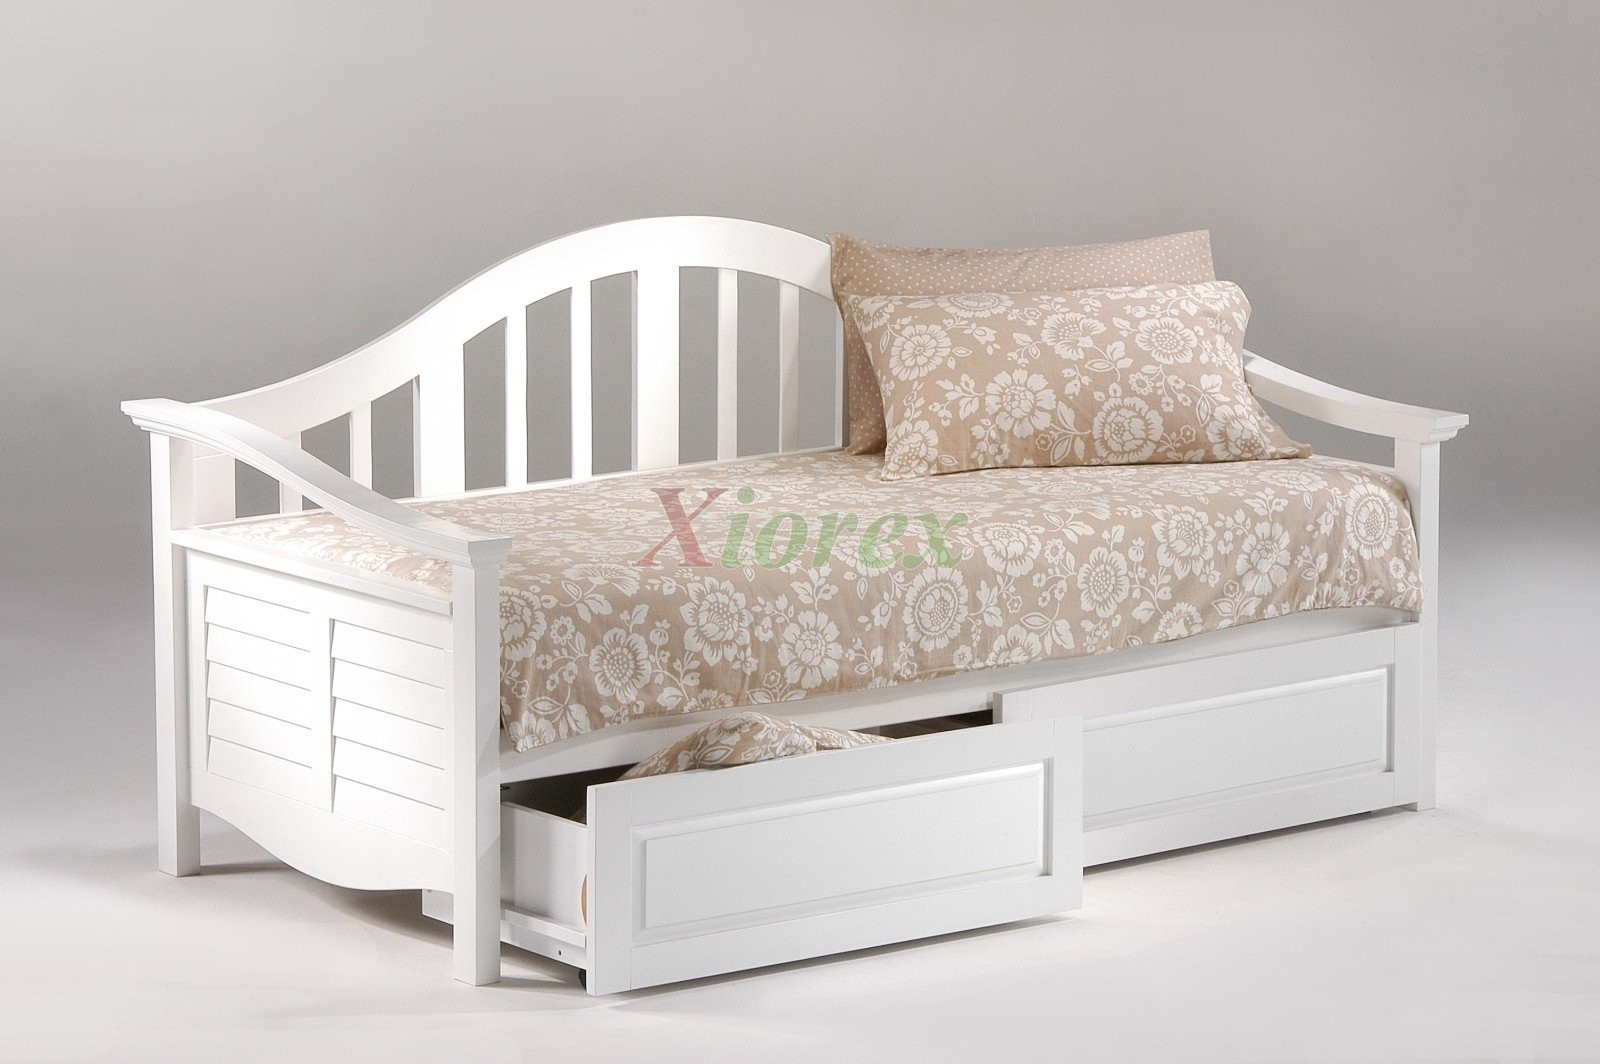 Seagull daybed twin size white day bed with trundle bed Daybeds with storage